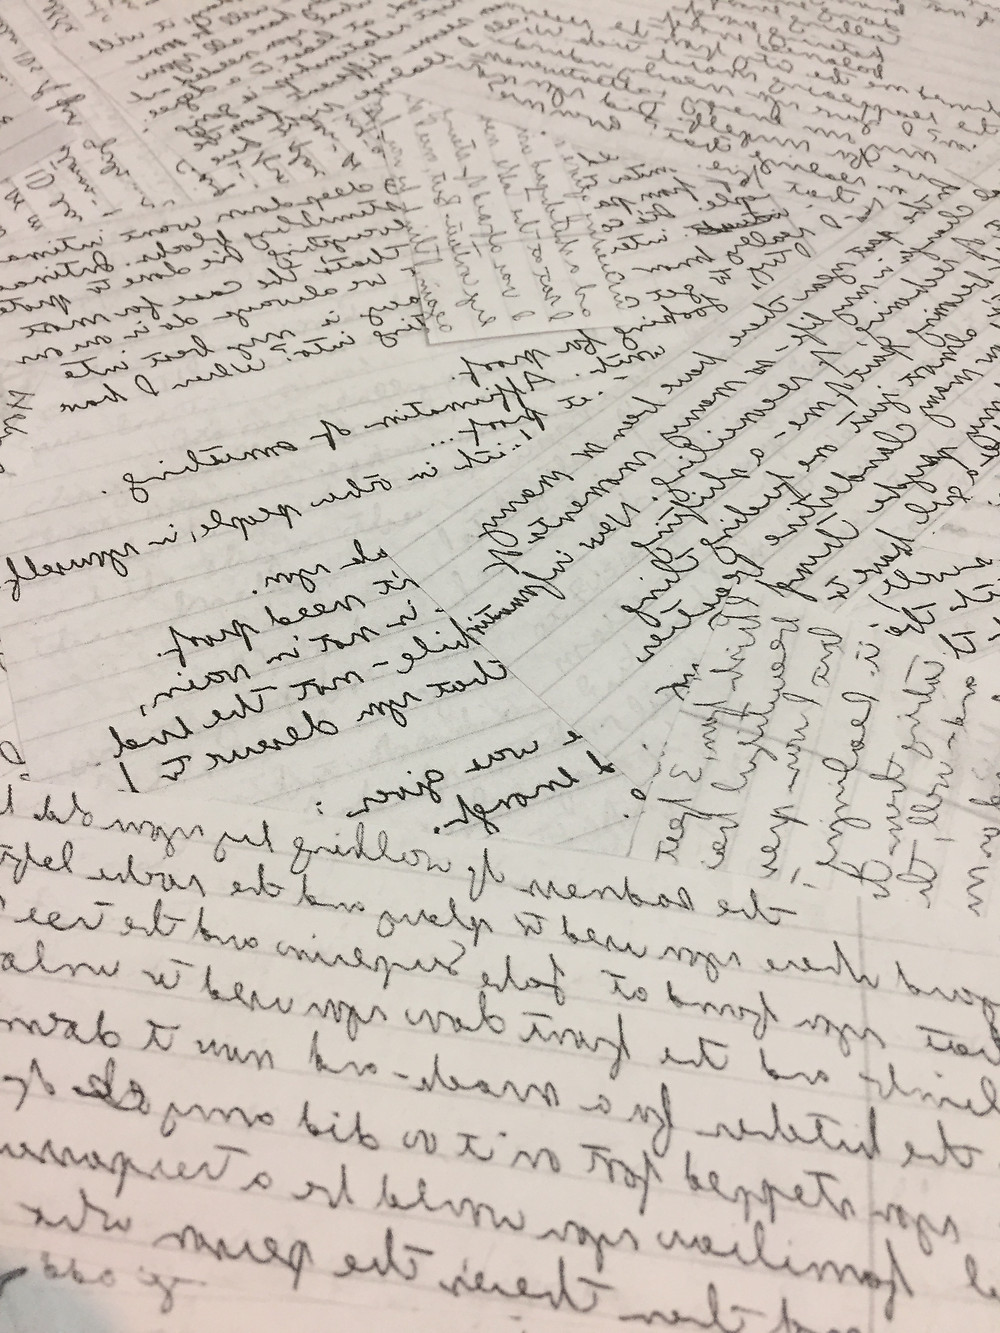 Close-up of pages of handwritten text.